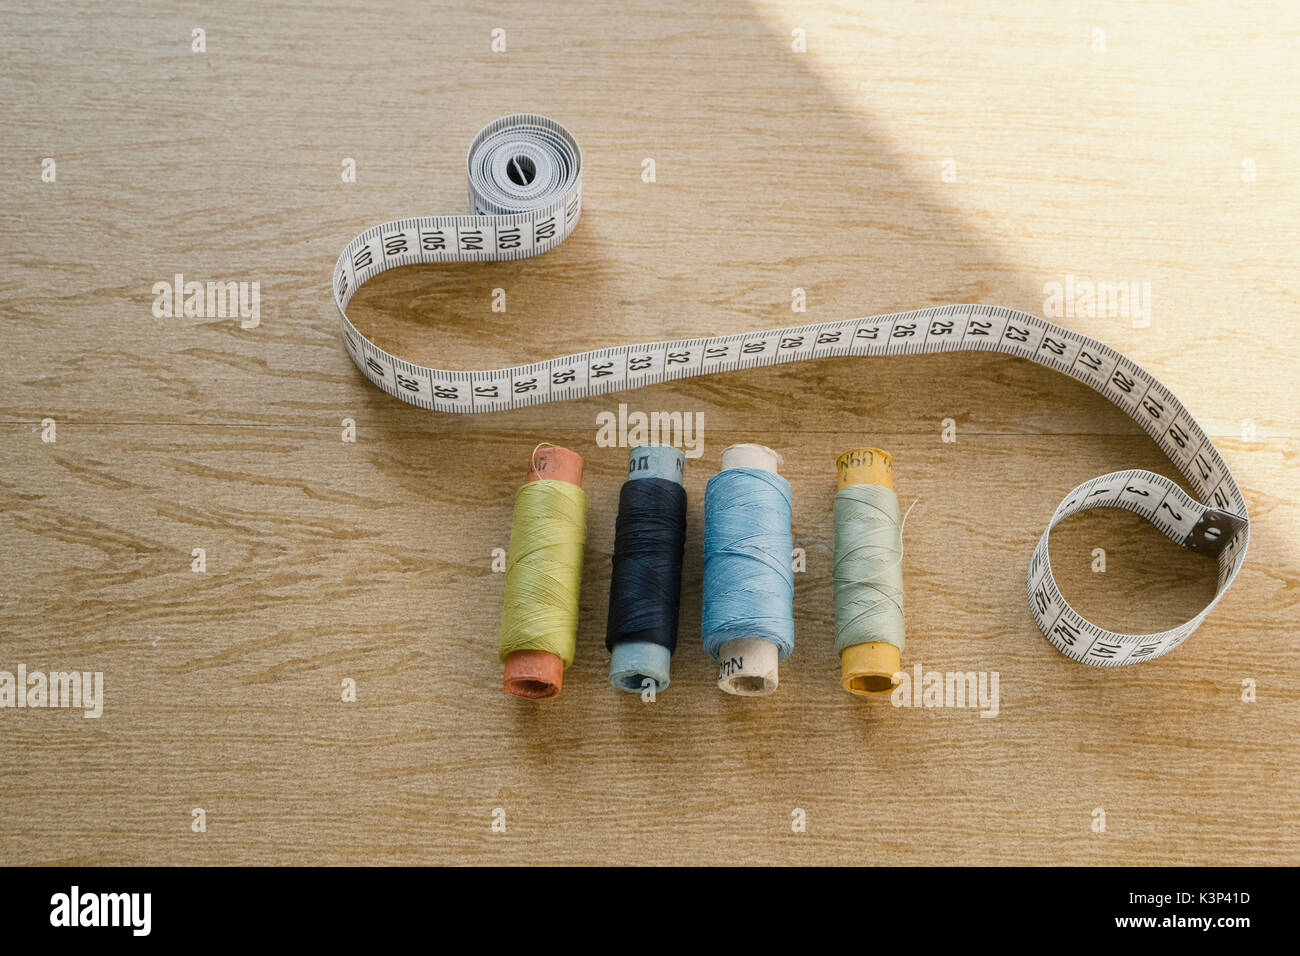 Sewing still life - different color cotton thread spools, thimble, needle, measuring tape - Stock Image